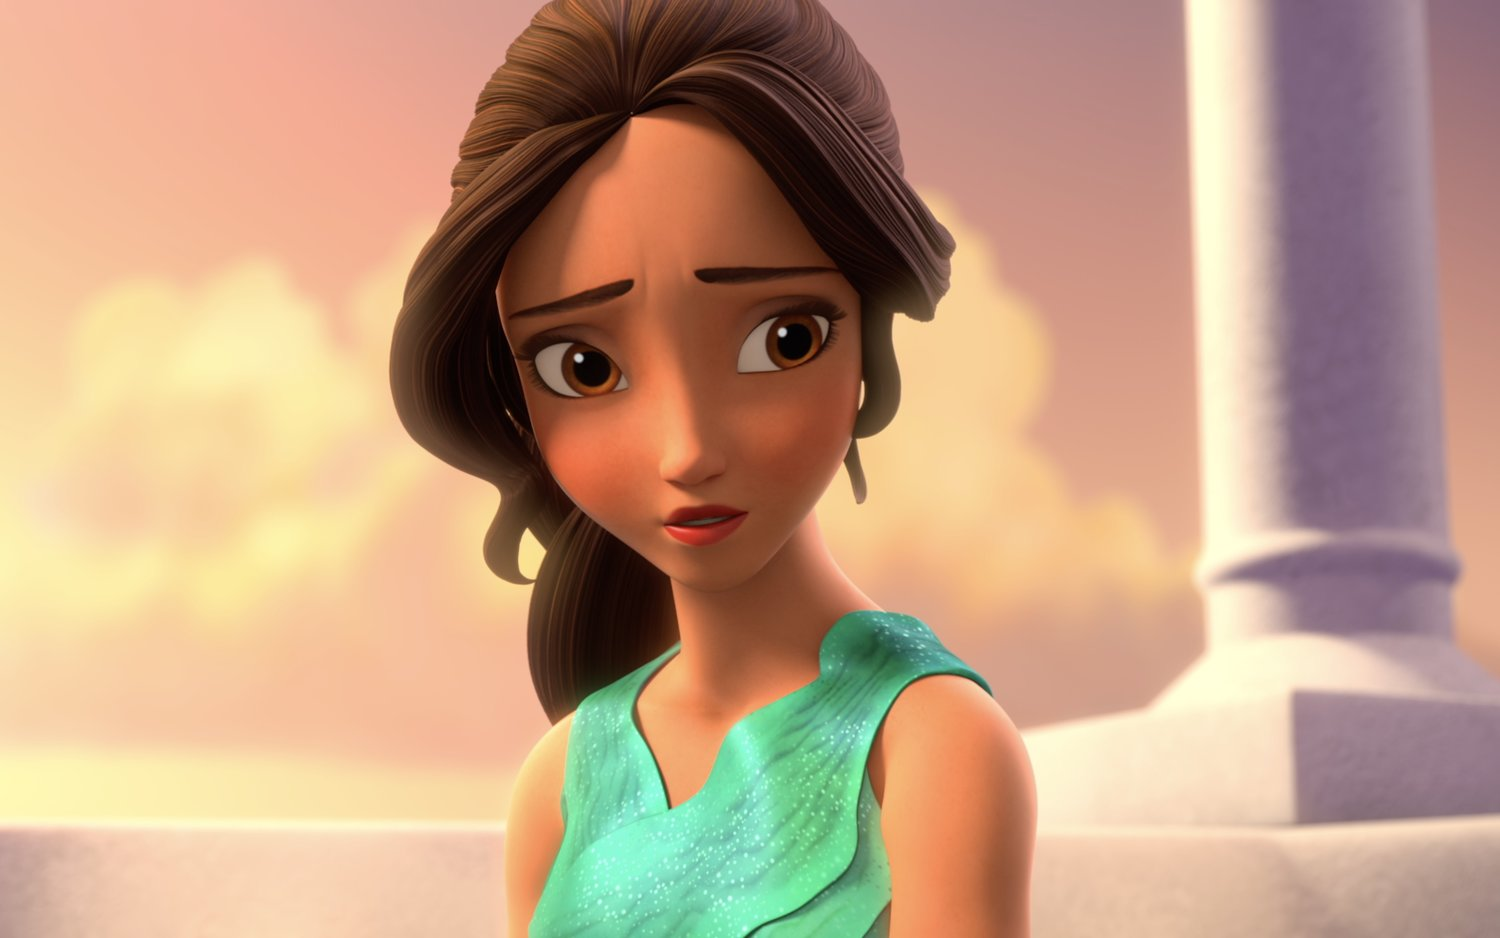 Elena+of+Avalor+-+Song+of+the+Sirenas-50.jpg